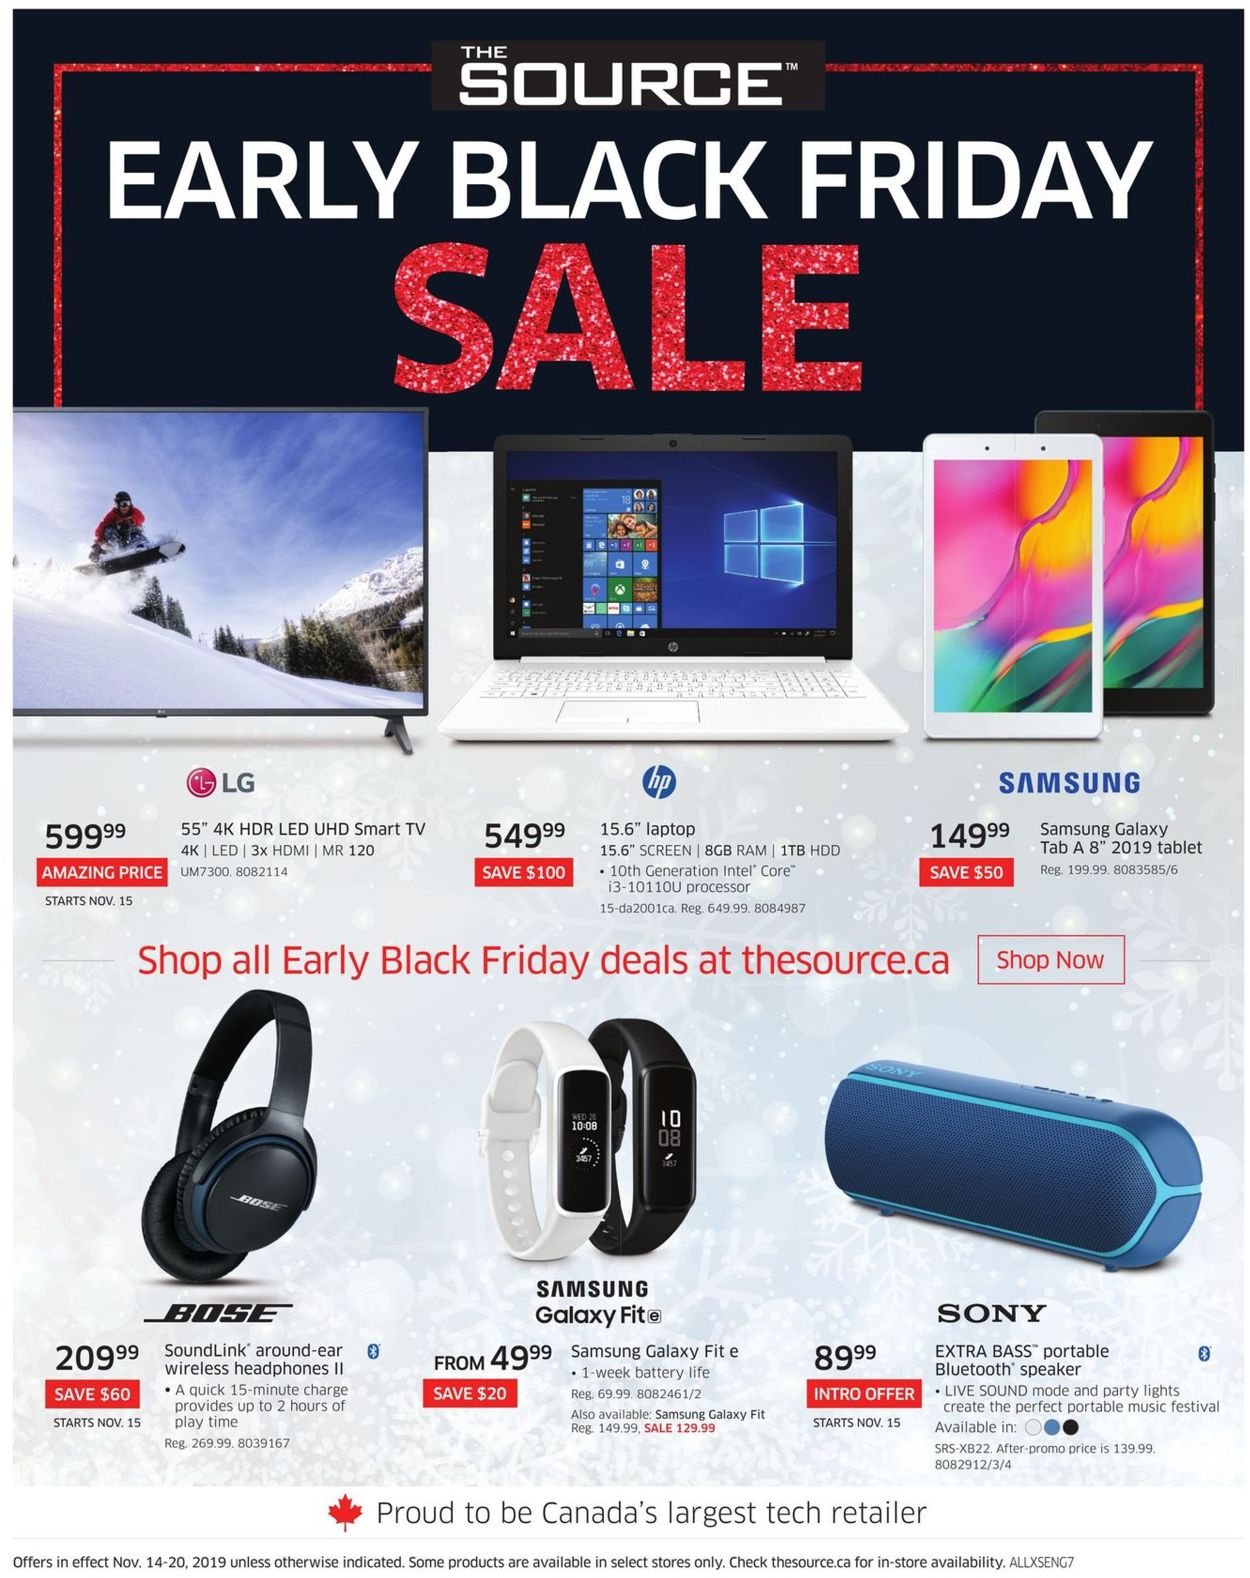 The Source EARLY BLACK FRIDAY 2019 SALE